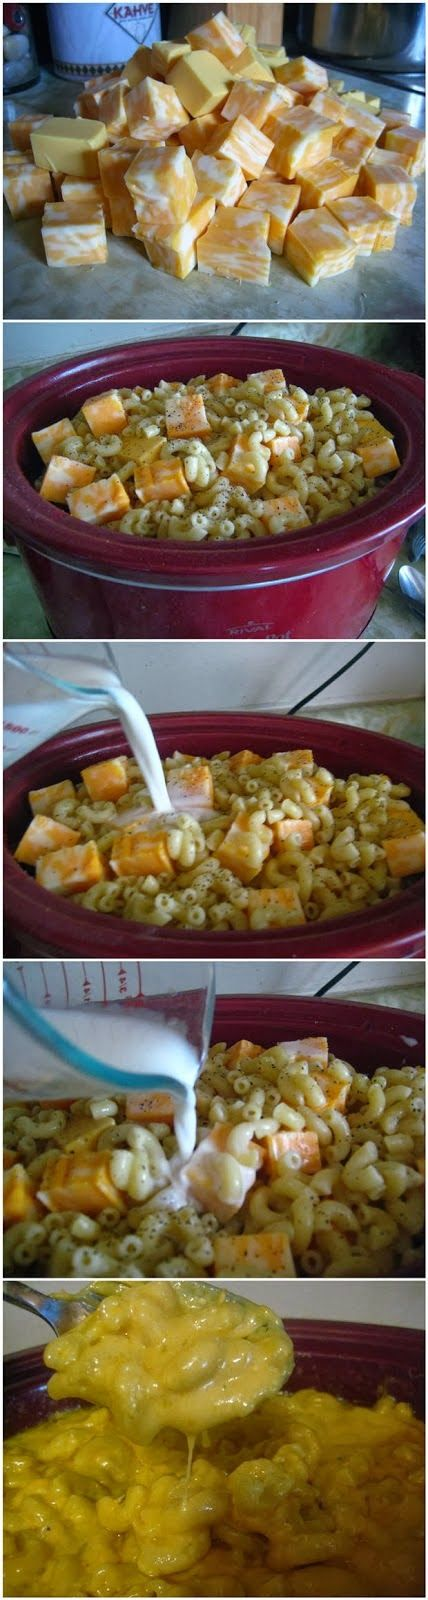 Crock Pot Mac and Cheese.  This was fantastic.  I made it exactly according to directions (I used the casserole macaroni), and put a liner in my slow cooker, then sprayed it.  I stirred at 2 hours, 3